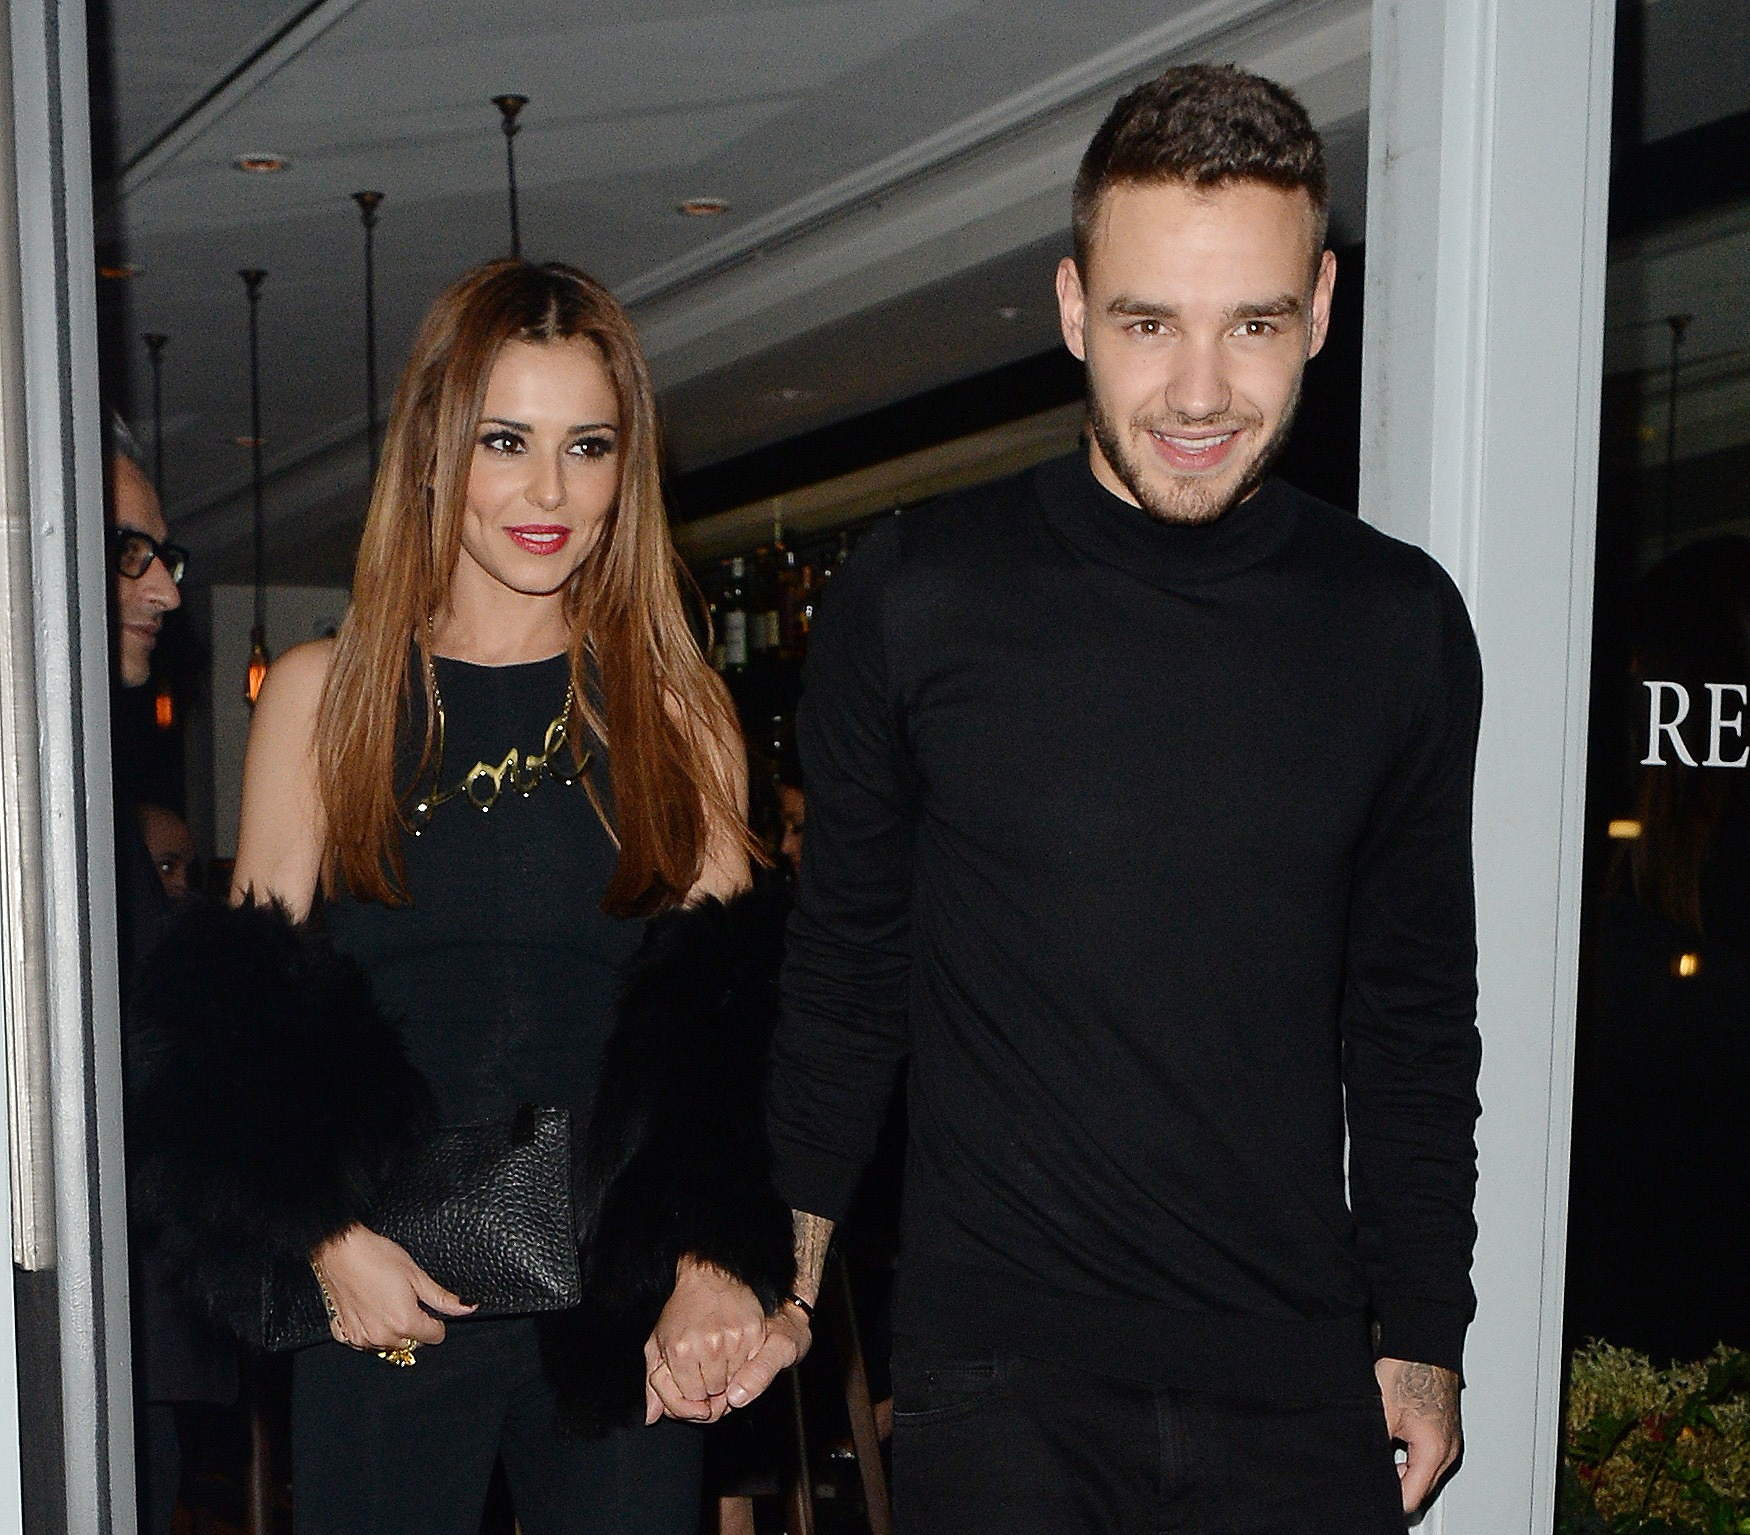 Cheryl and Liam Payne 'ready to end relationship'